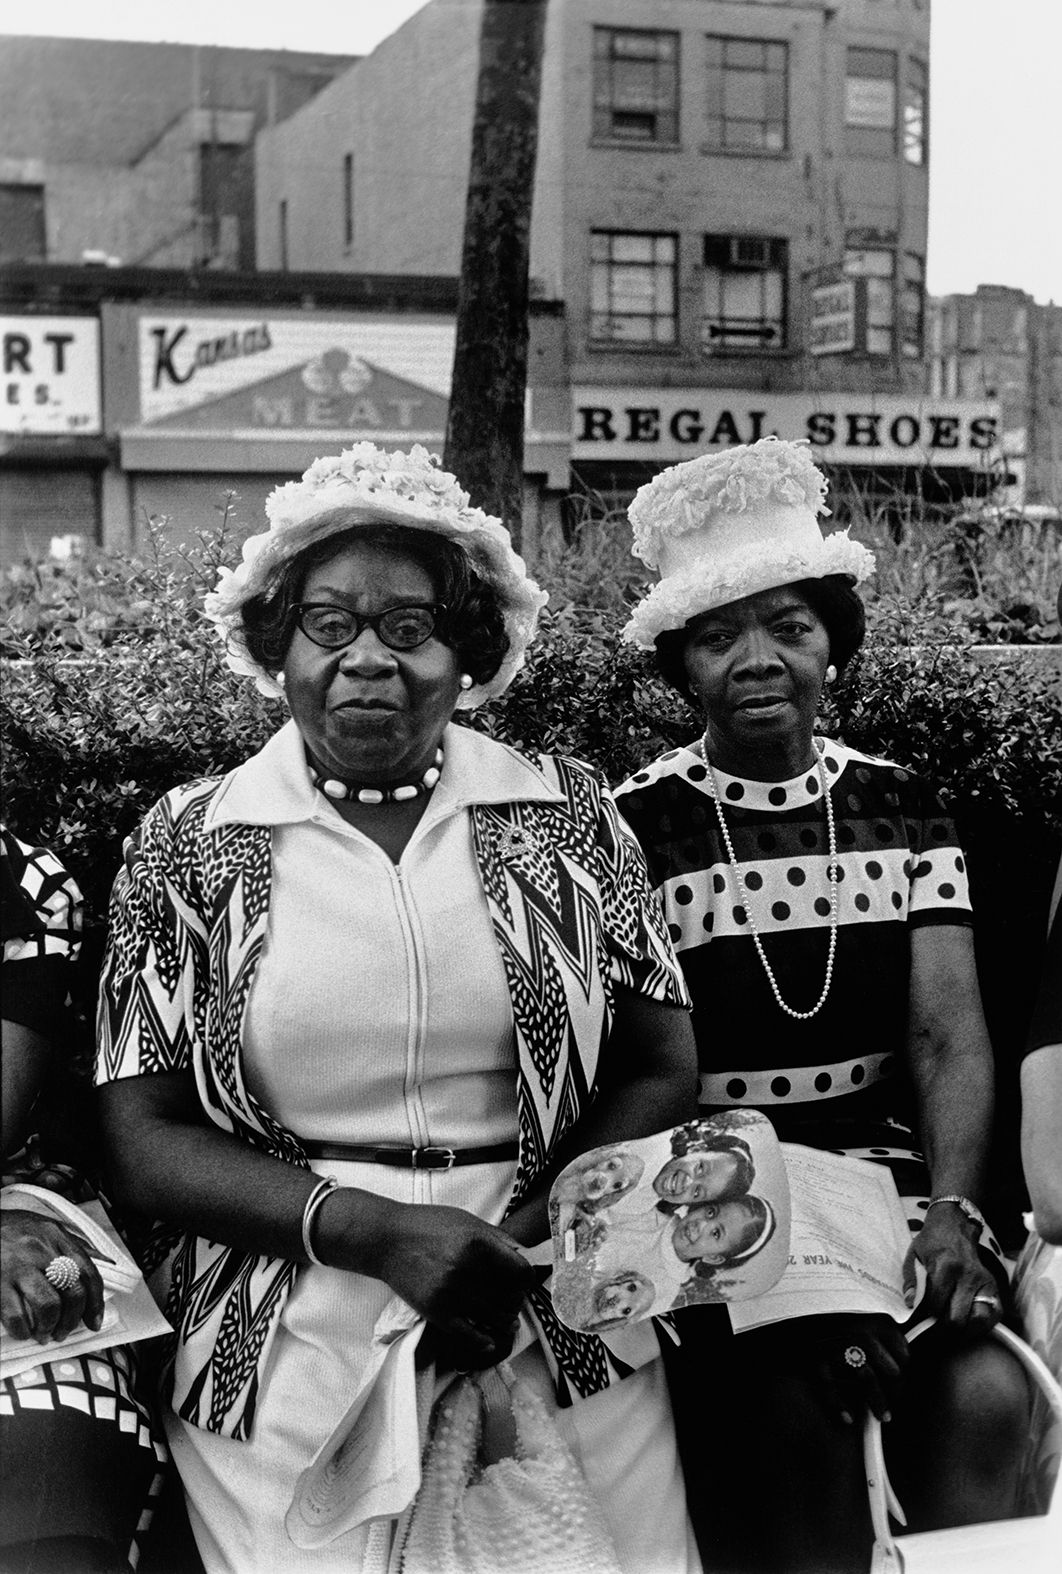 Ming Smith, 'Amen Corner Sisters, Harlem, New York', 1976. Two women sit on a bench before Harlem shops.